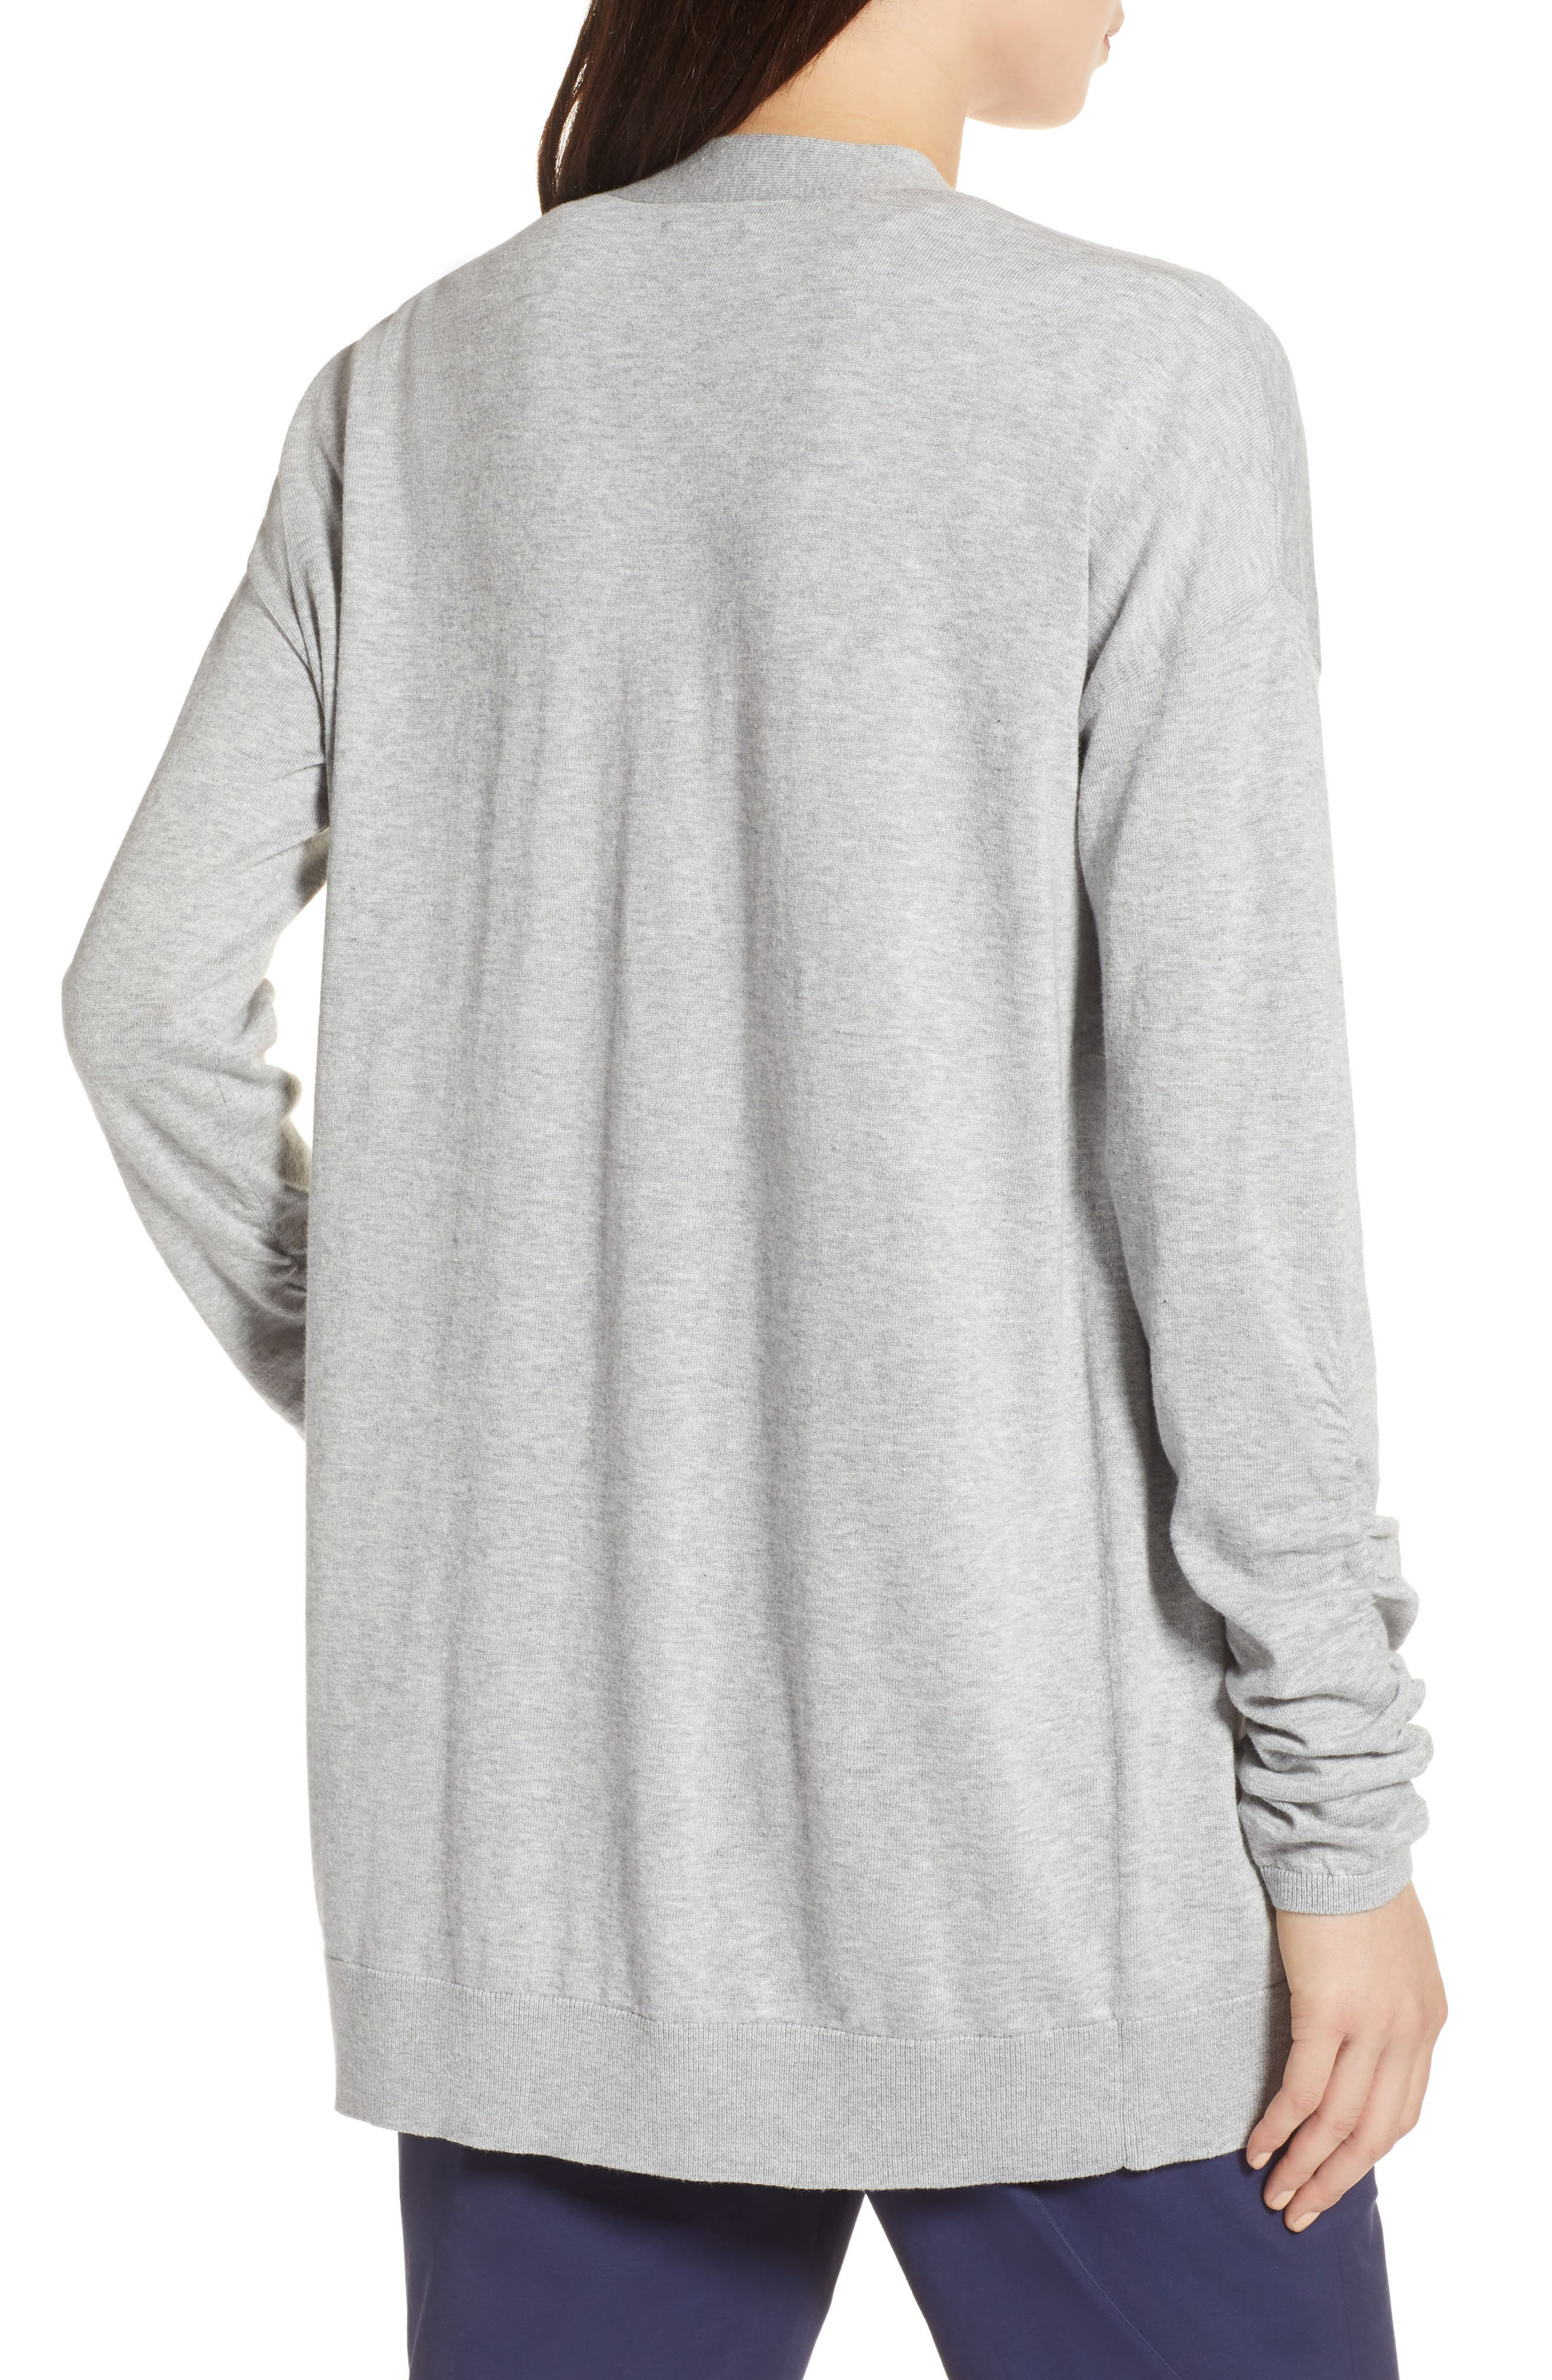 Ruched Sleeve Cardigan,                             Alternate thumbnail 2, color,                             Grey Heather